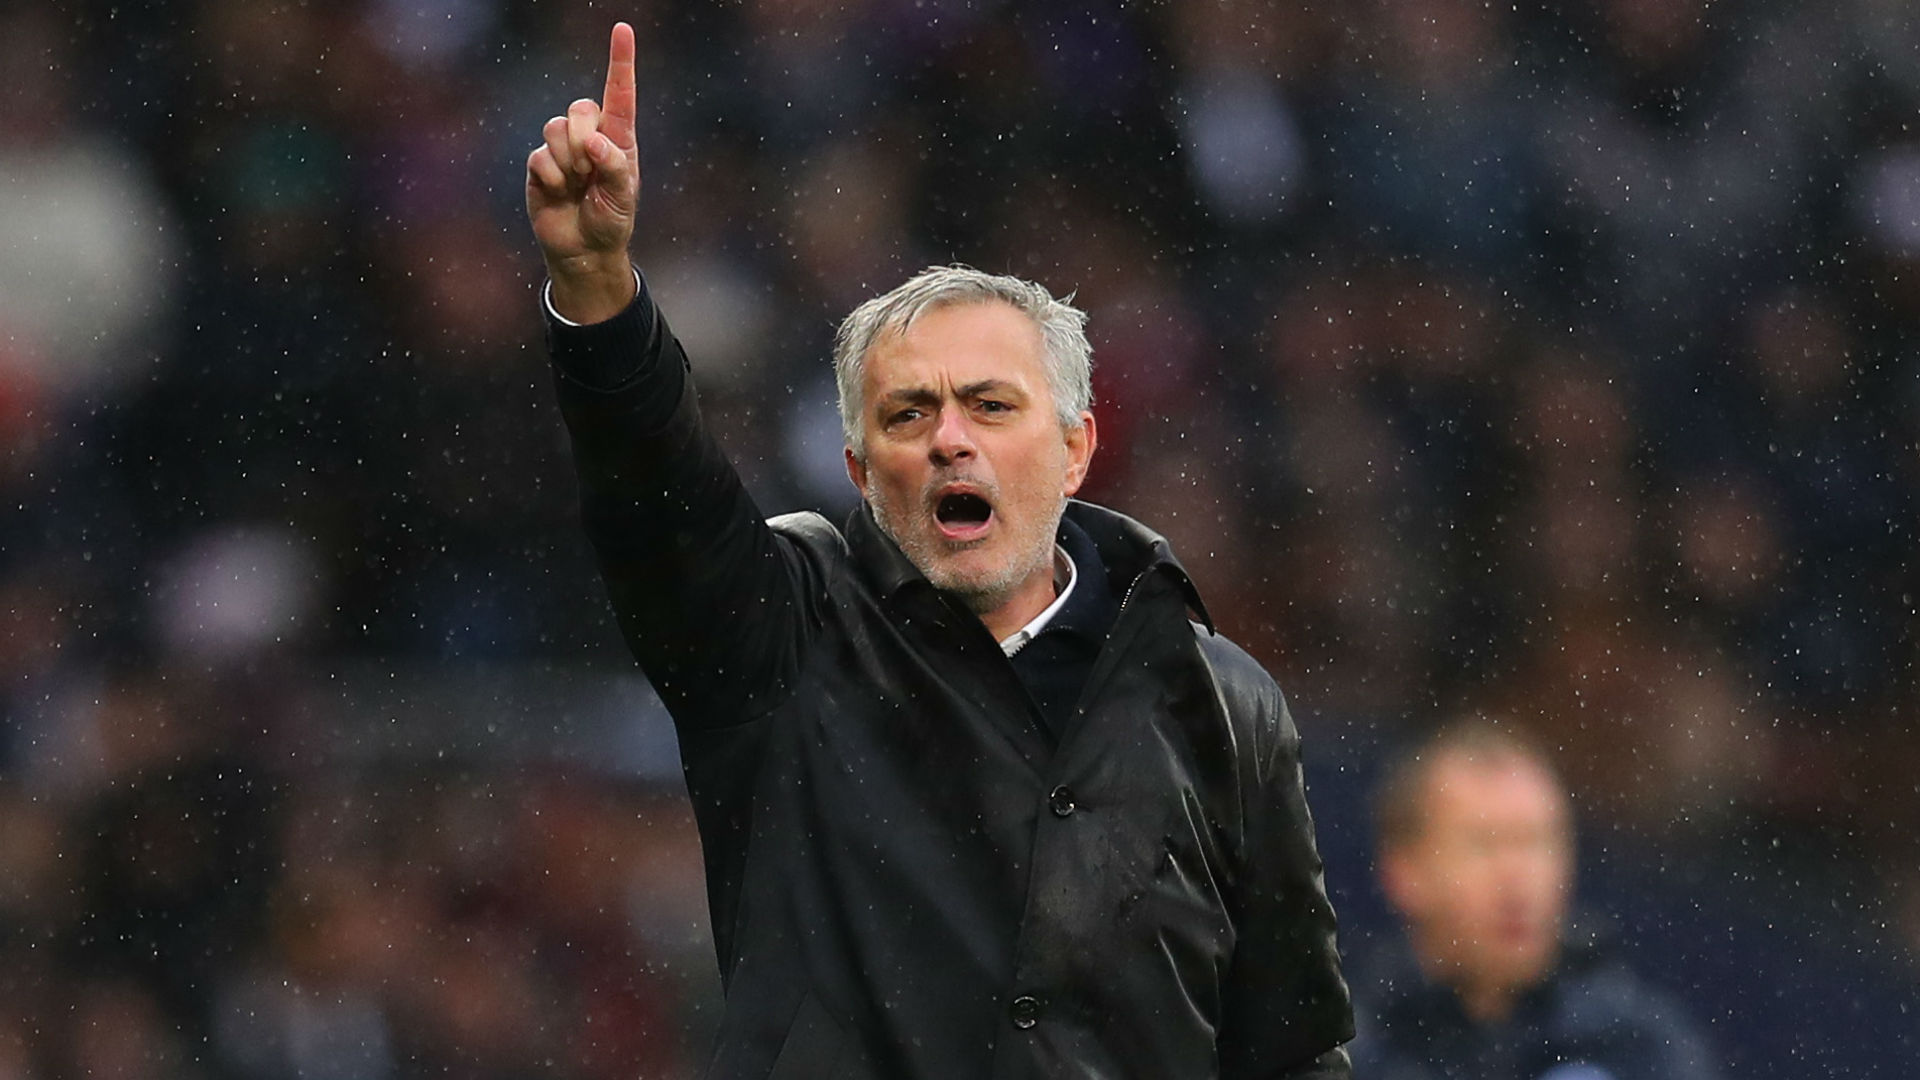 Mourinho: Festive schedule against every rule of physiology, biology, biochemistry